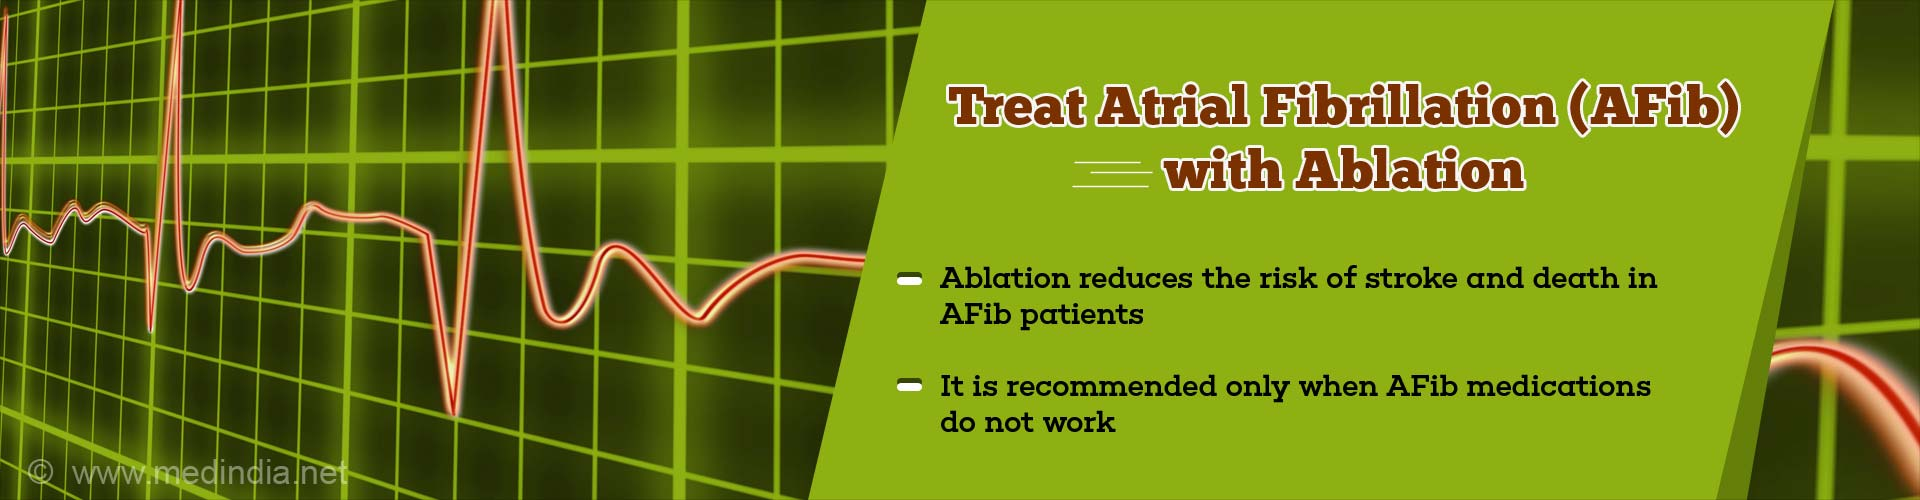 Ablation can Help Treat Atrial Fibrillation Better